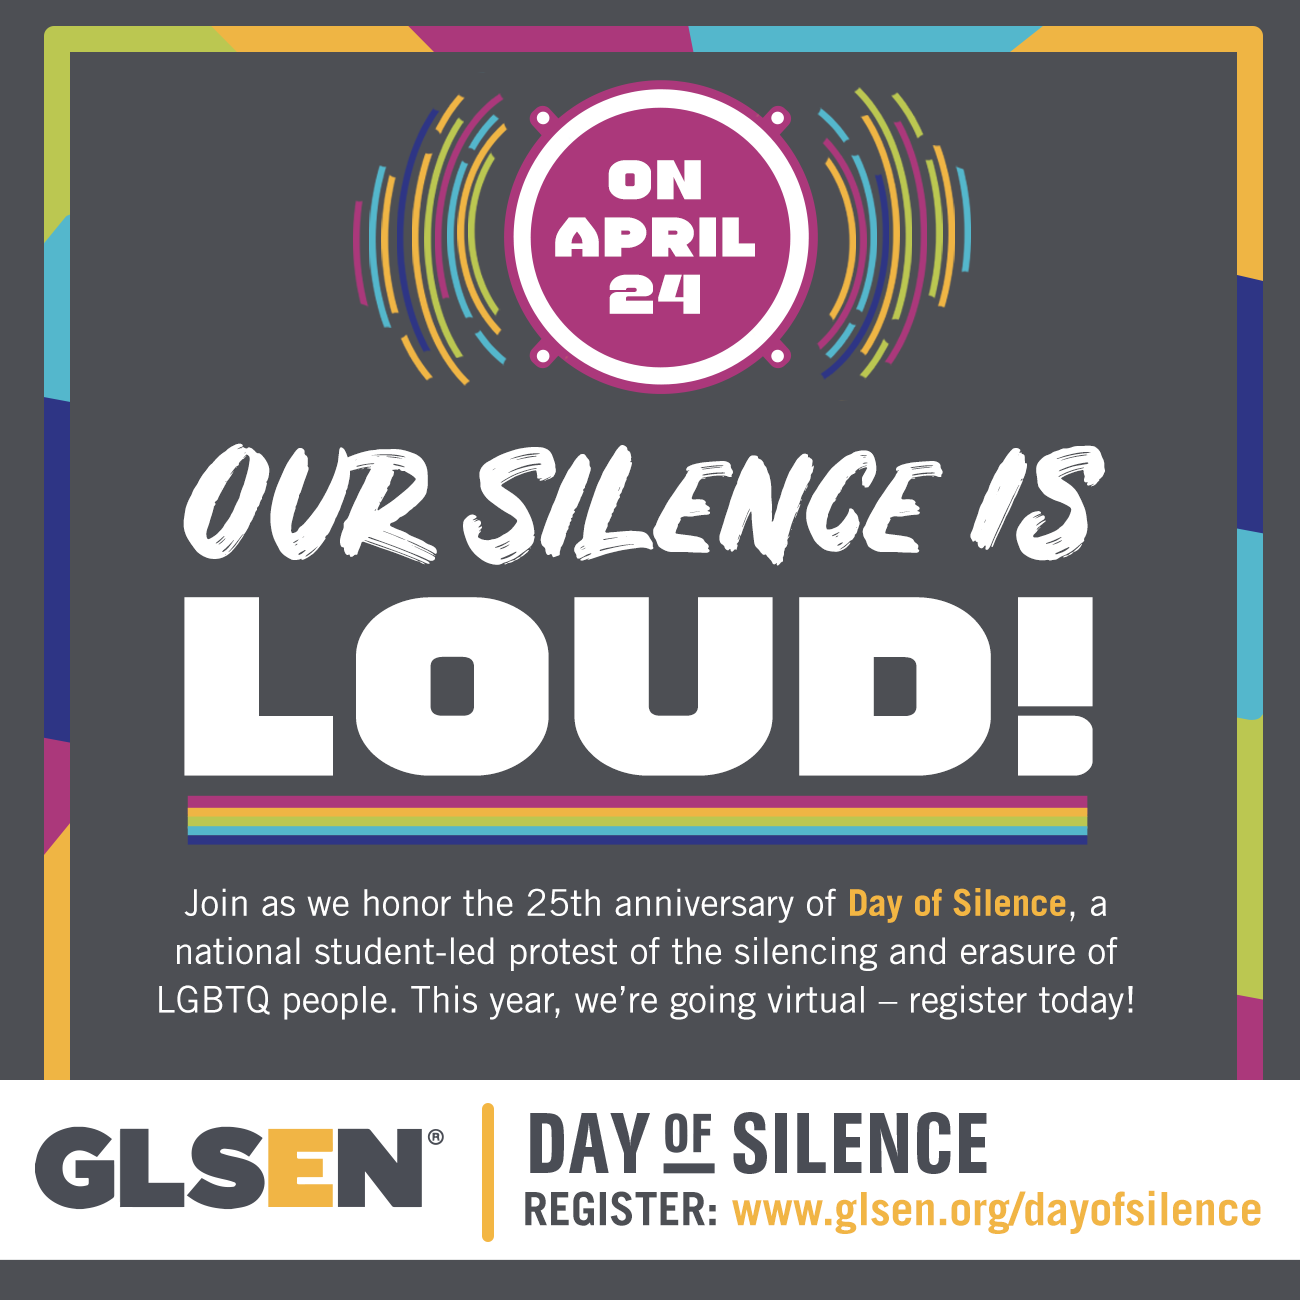 Day of Silence Launch Graphic 3